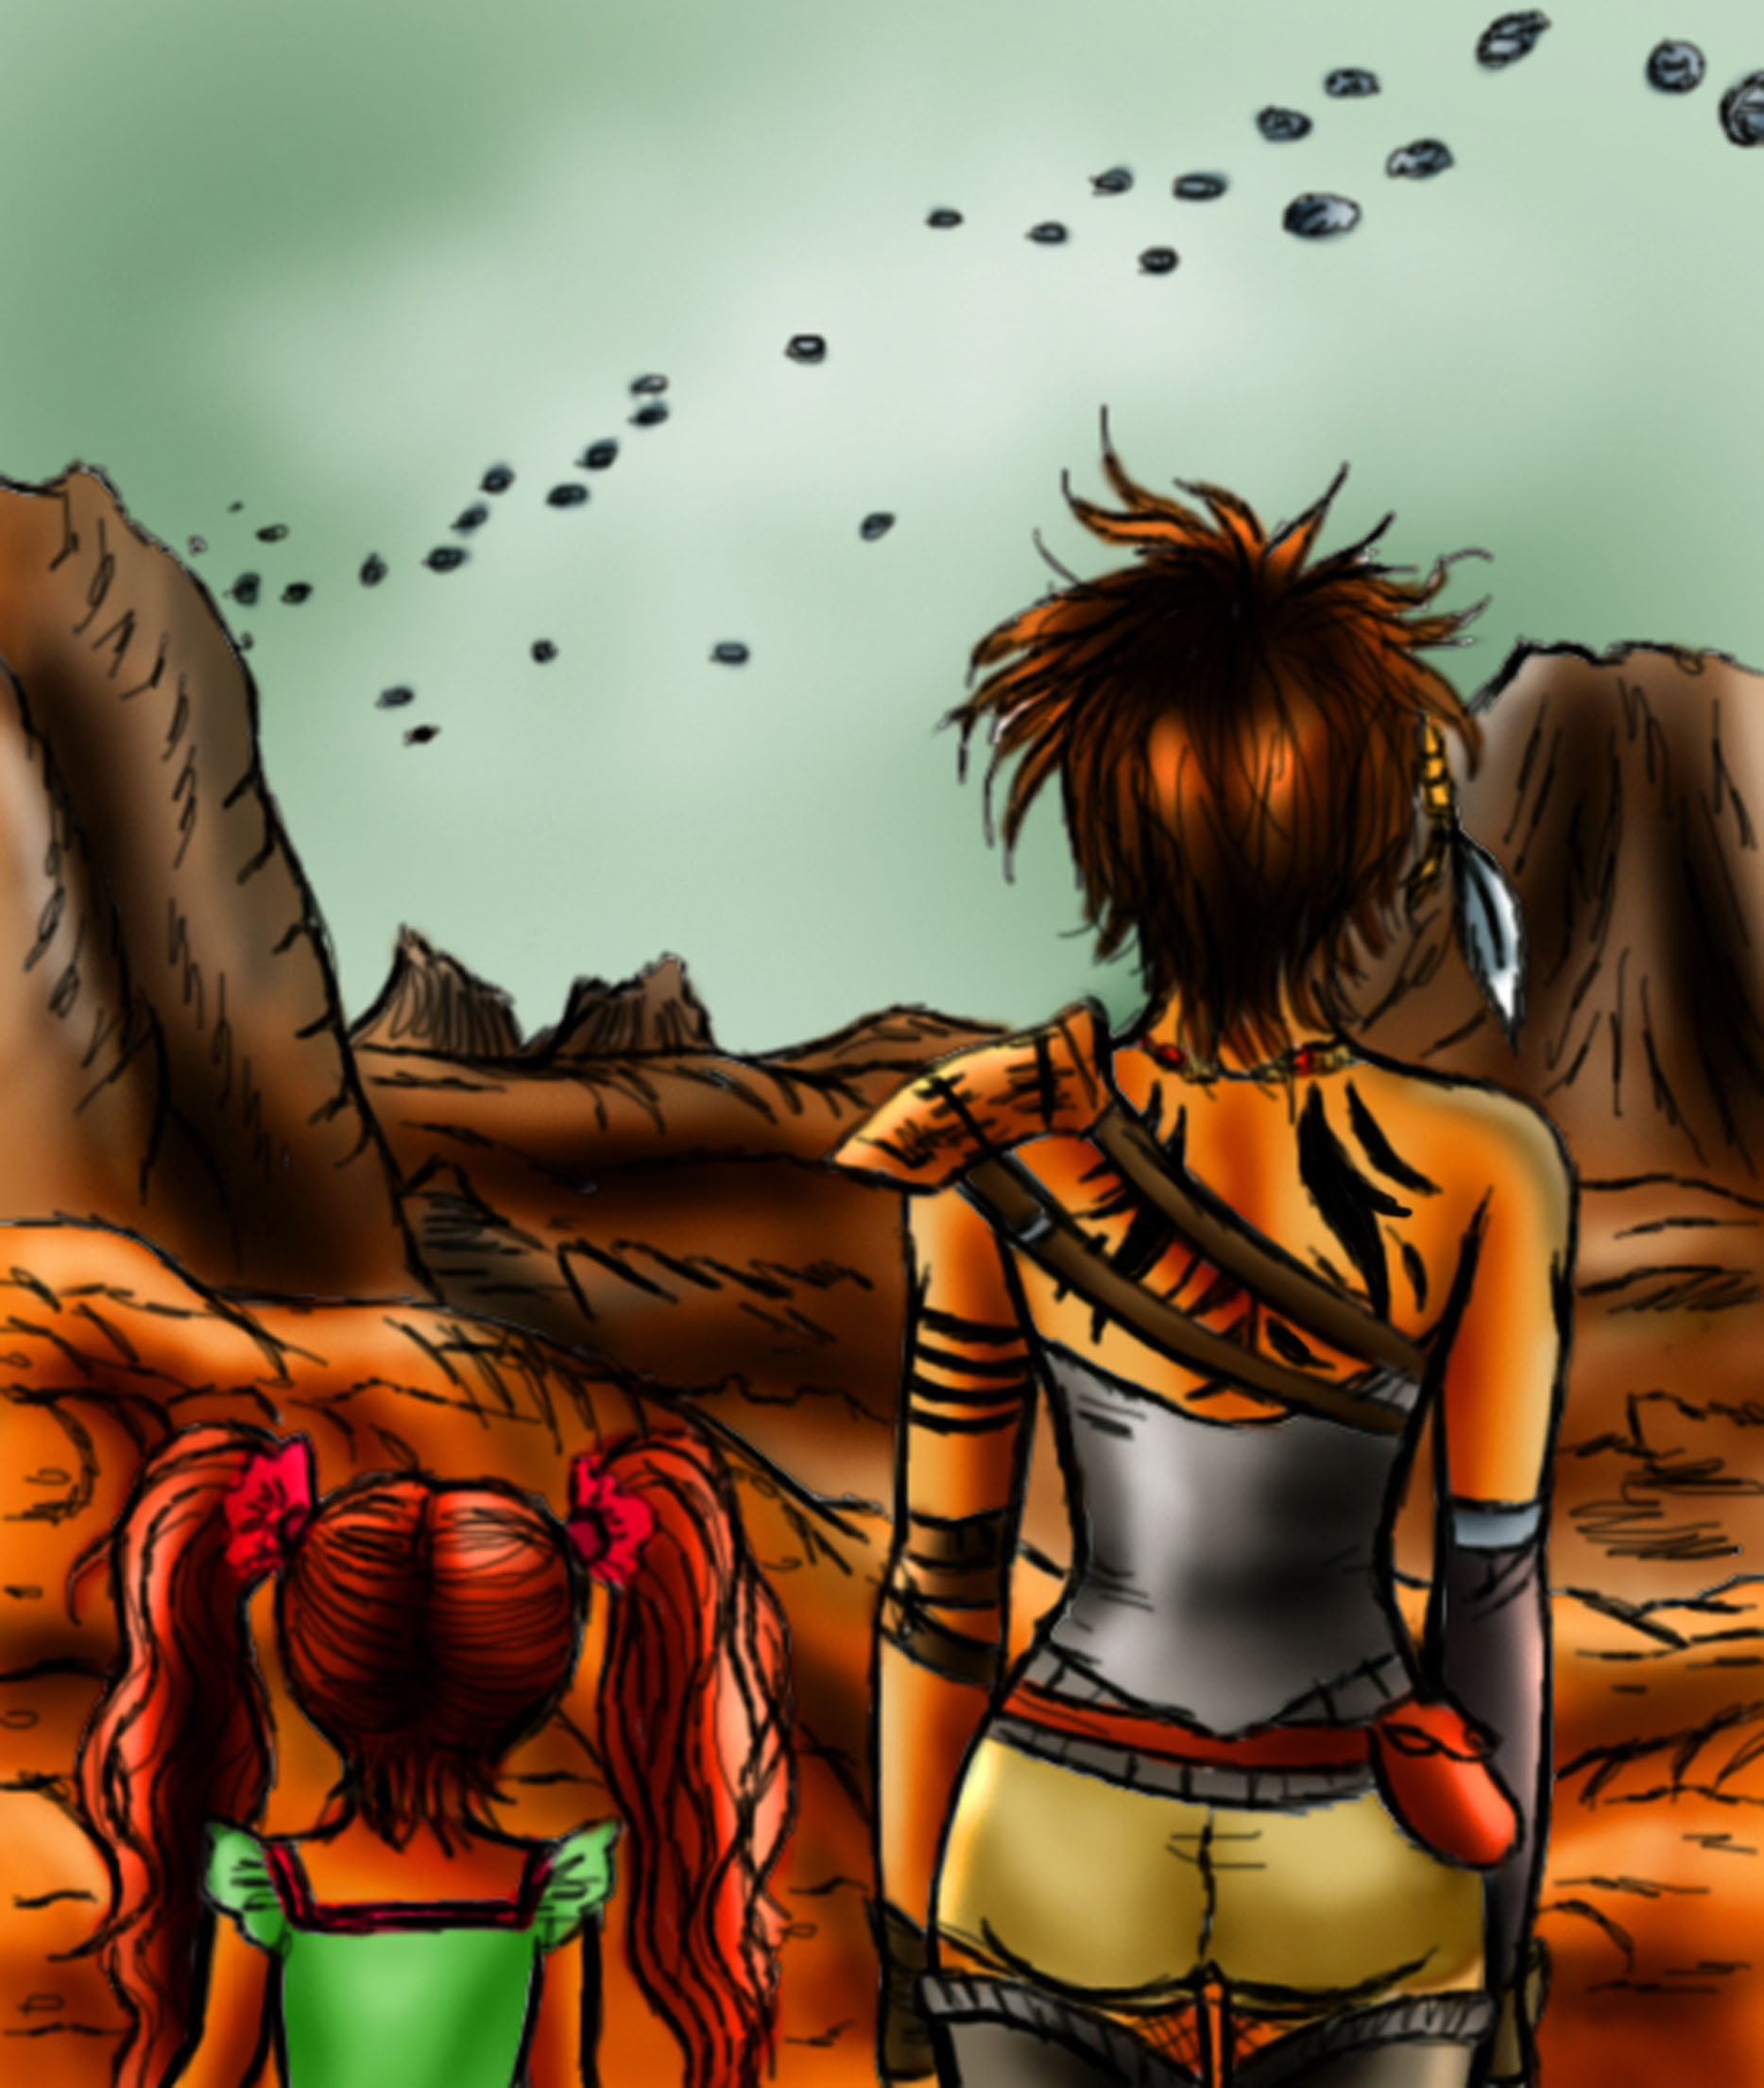 orn wendy desert Day #274 Post Apocalyptic Desert (in color)